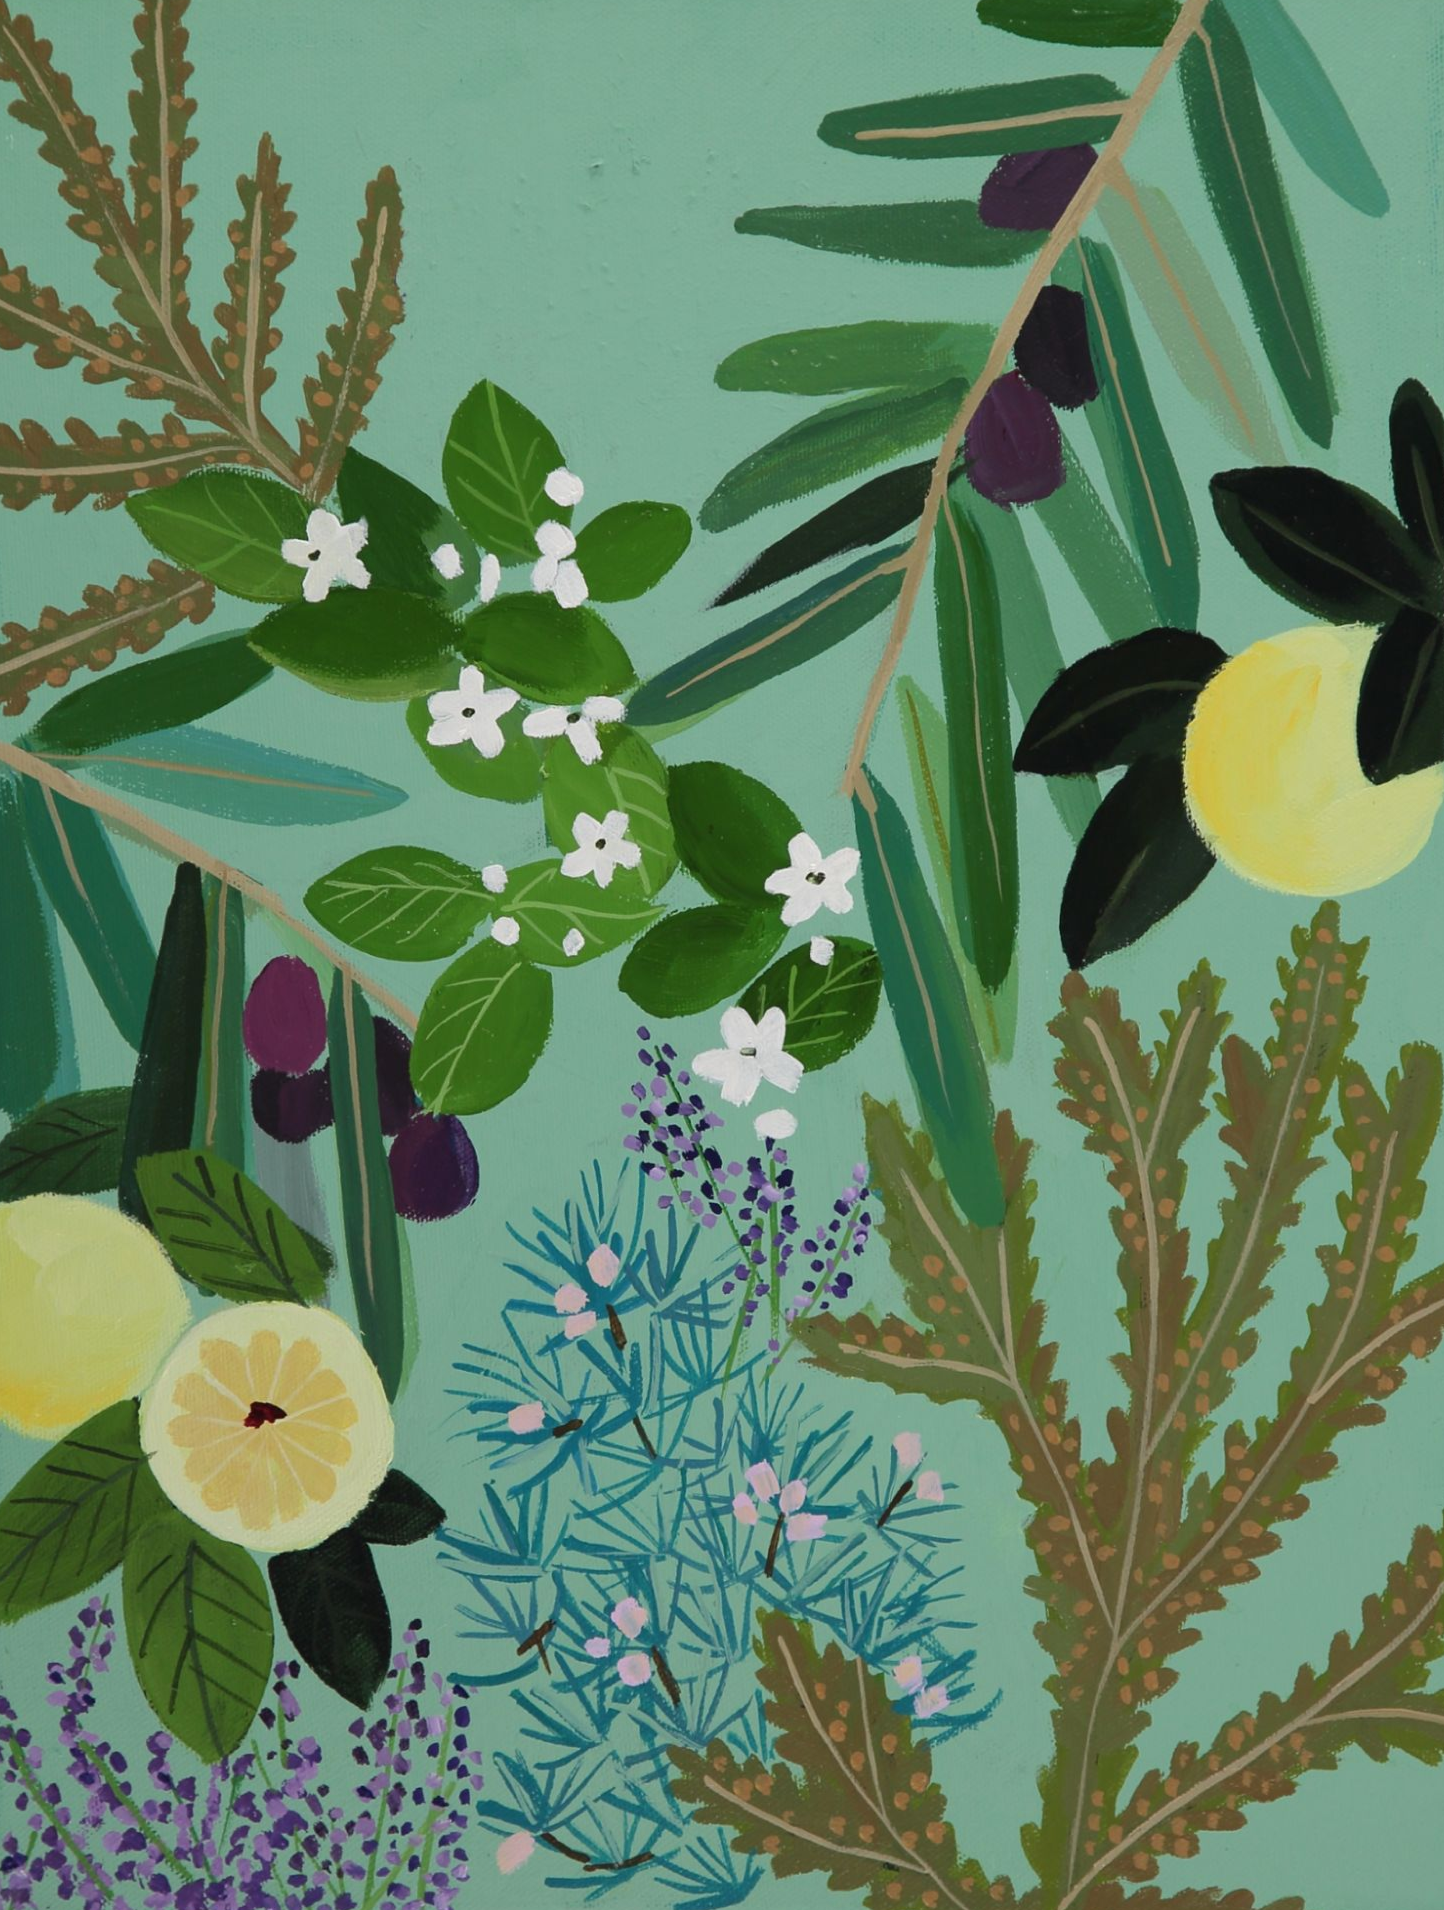 An illustrates selection of leaves, fruit and flowers on an aquamarine background